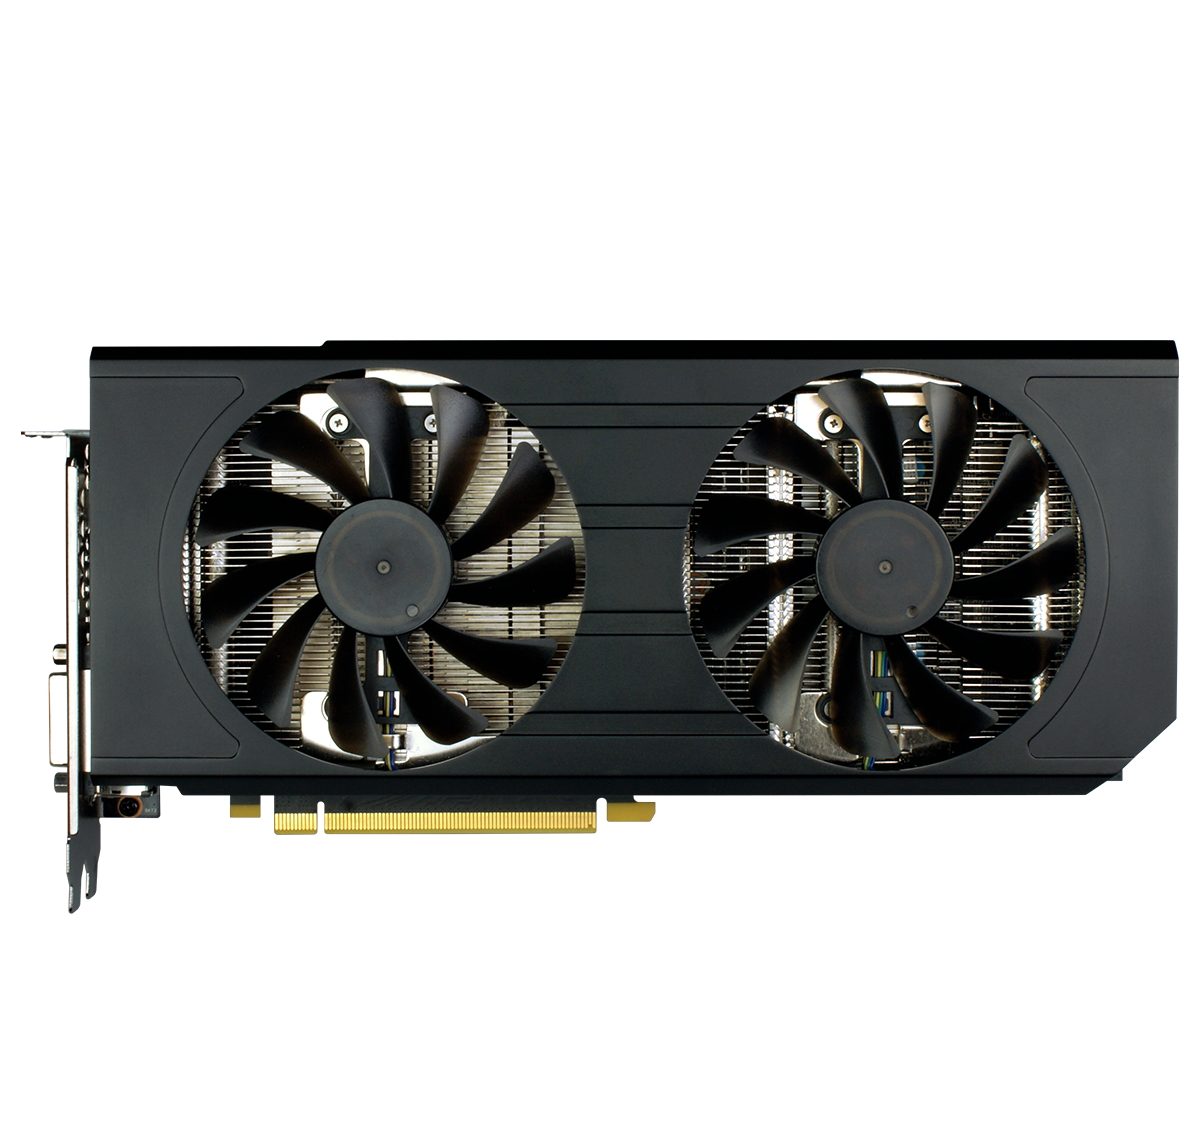 elsa_geforce_gtx_1080_8gb_gladiac_front